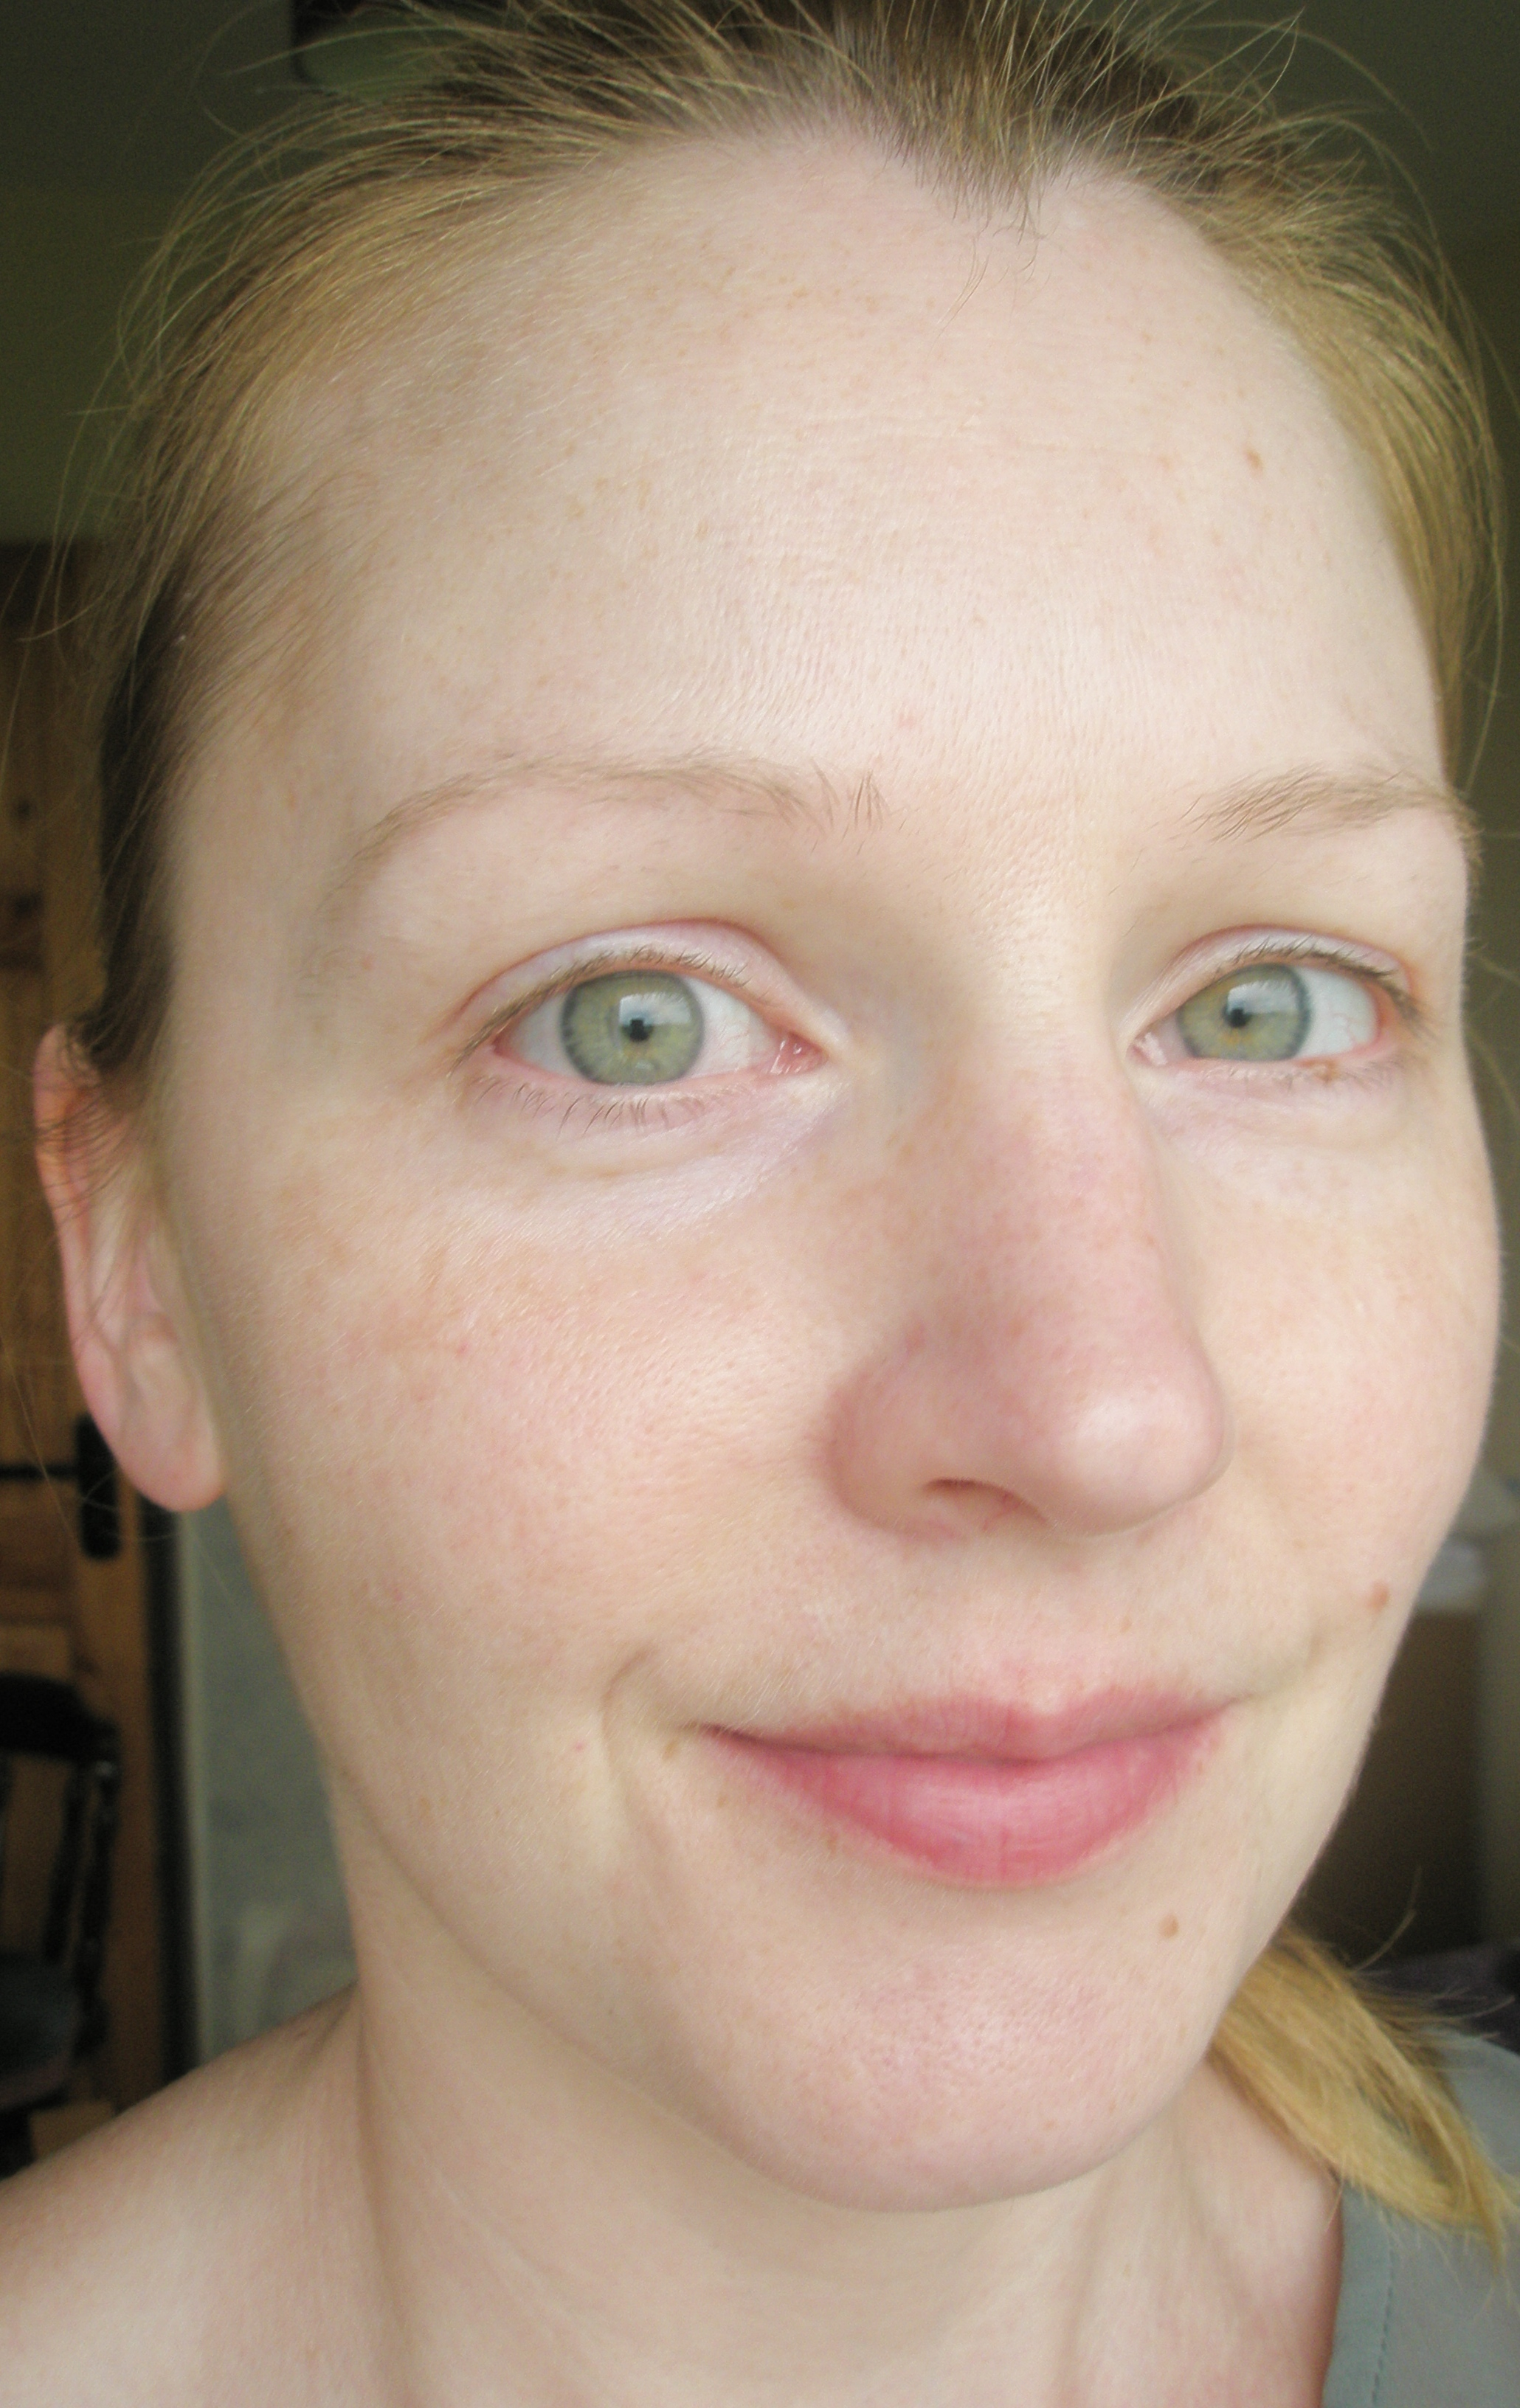 L'OREAL NUDE MAGIQUE CC CREAM FOR ANTI-REDNESS: REVIEW AND ...